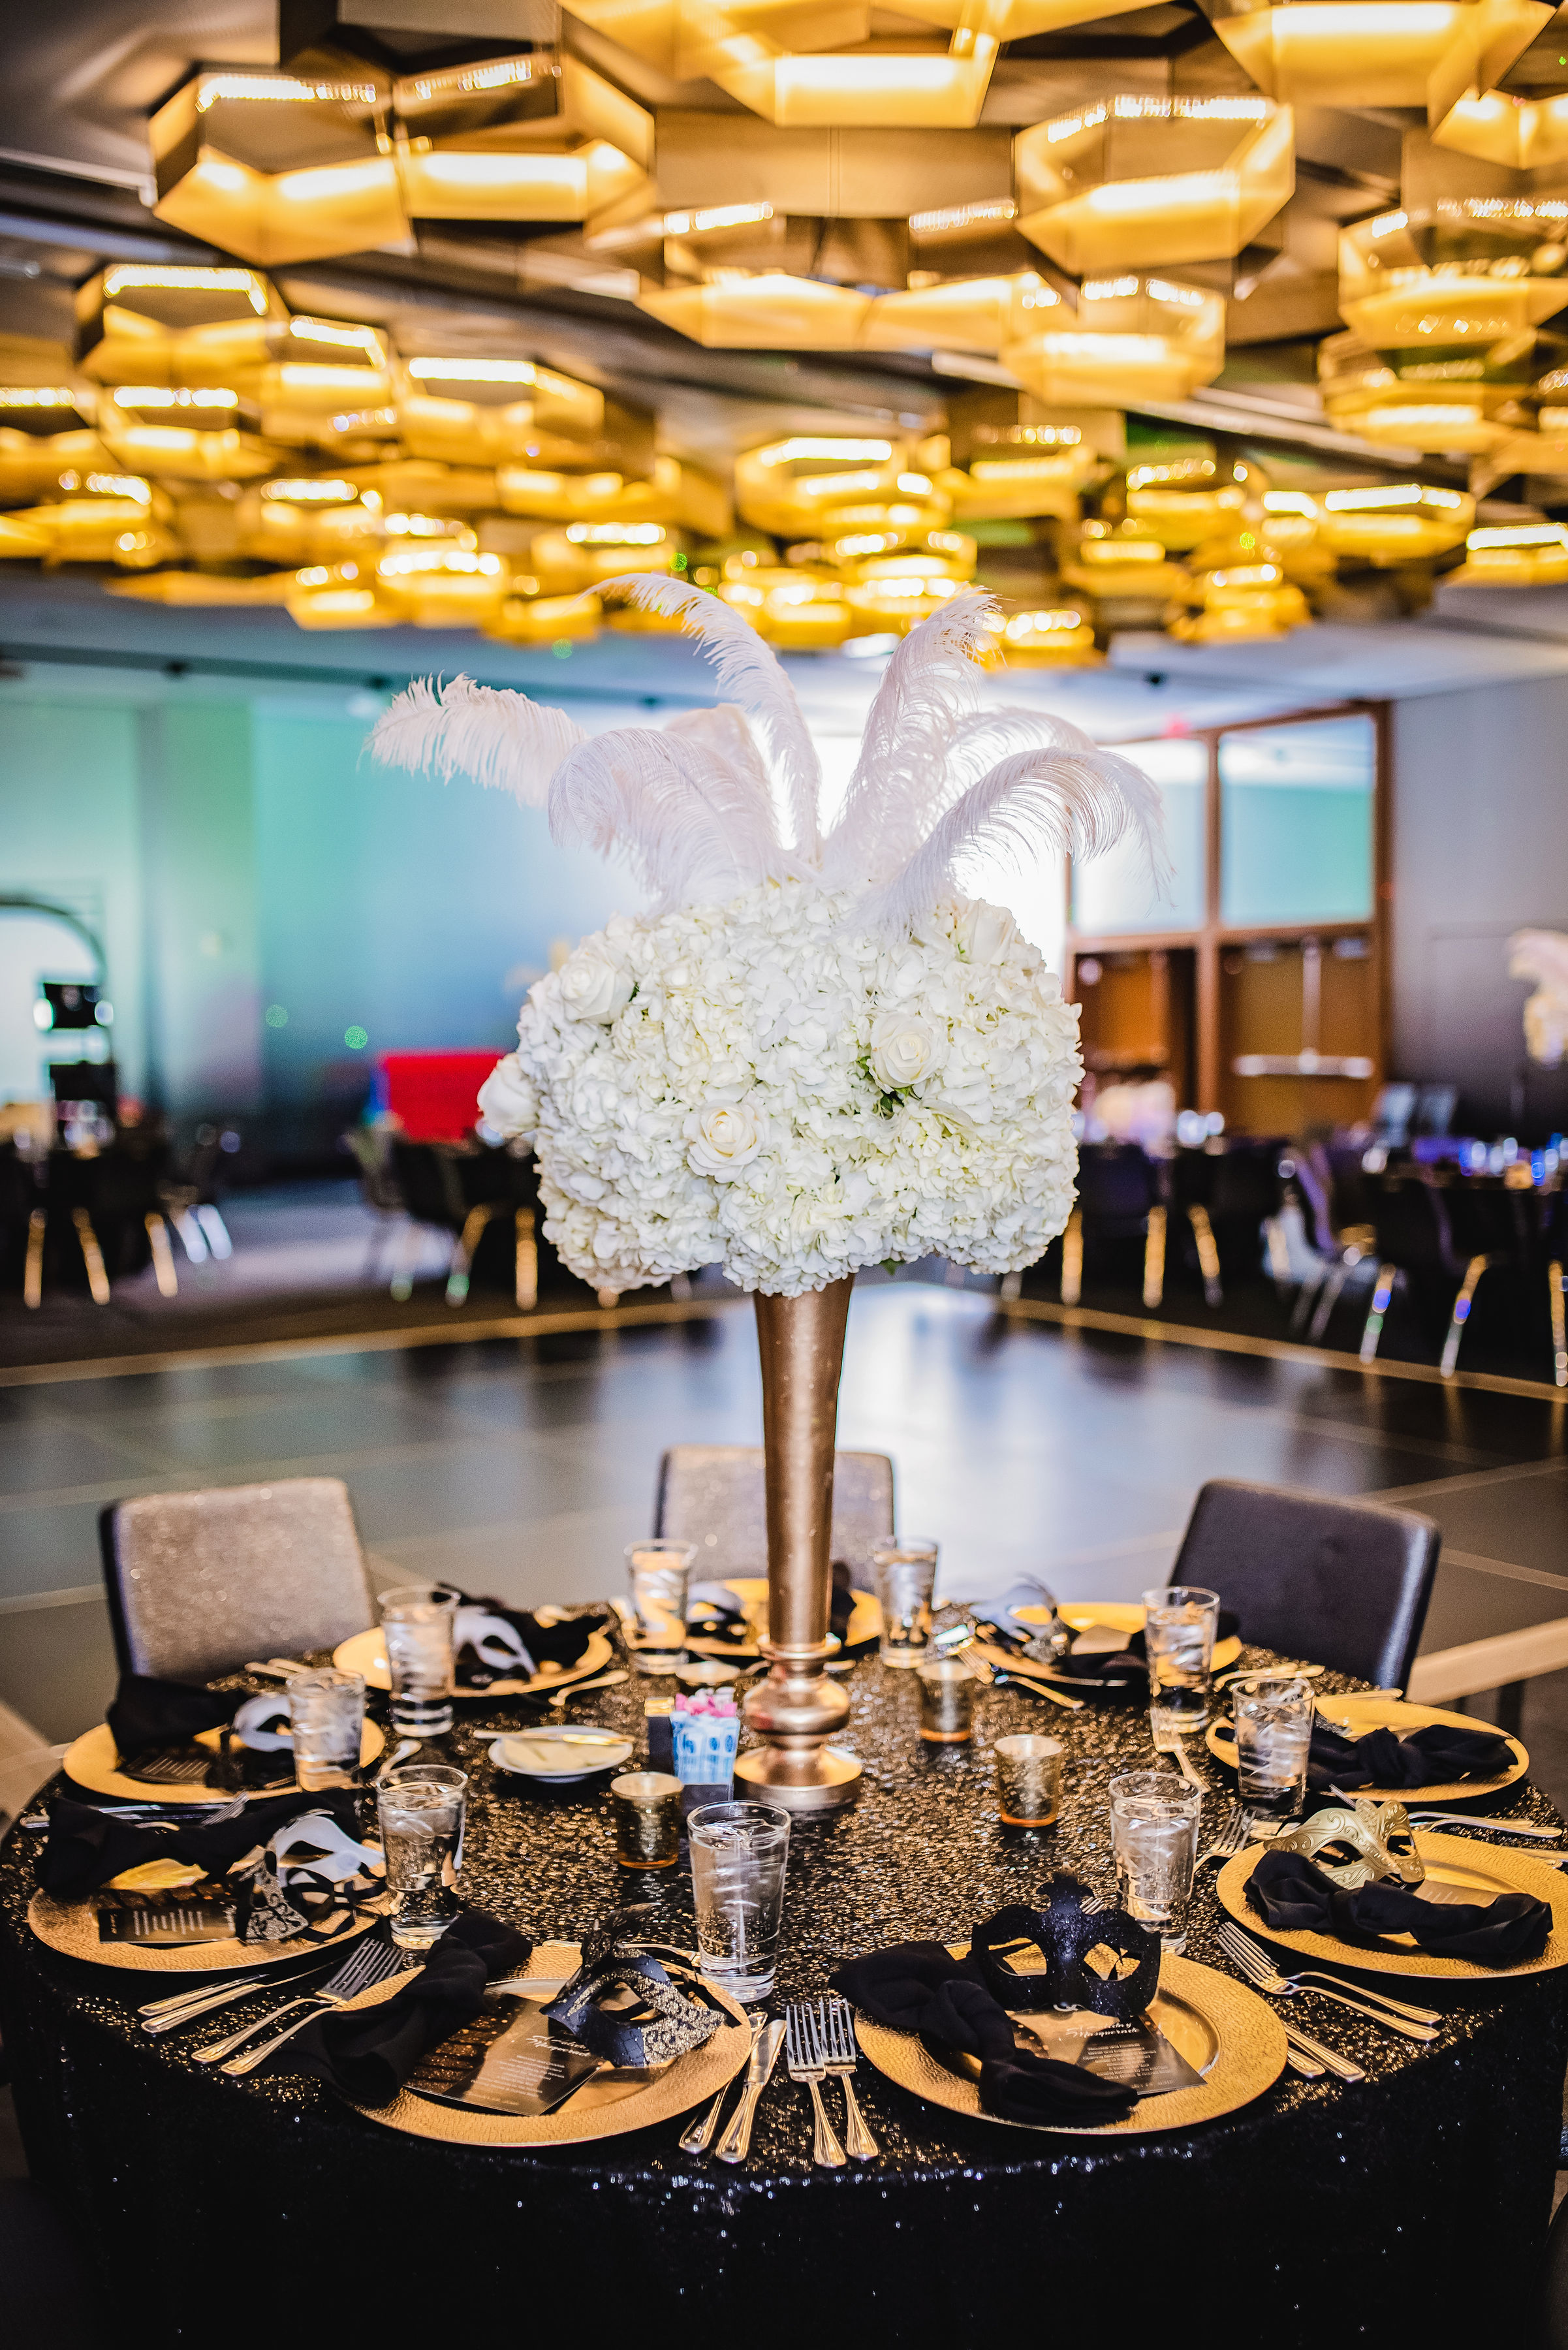 corporate-holiday-party-wedding-dallas-wedding-planner-swank-soiree-lavishlylux-photogrpahy.JPG